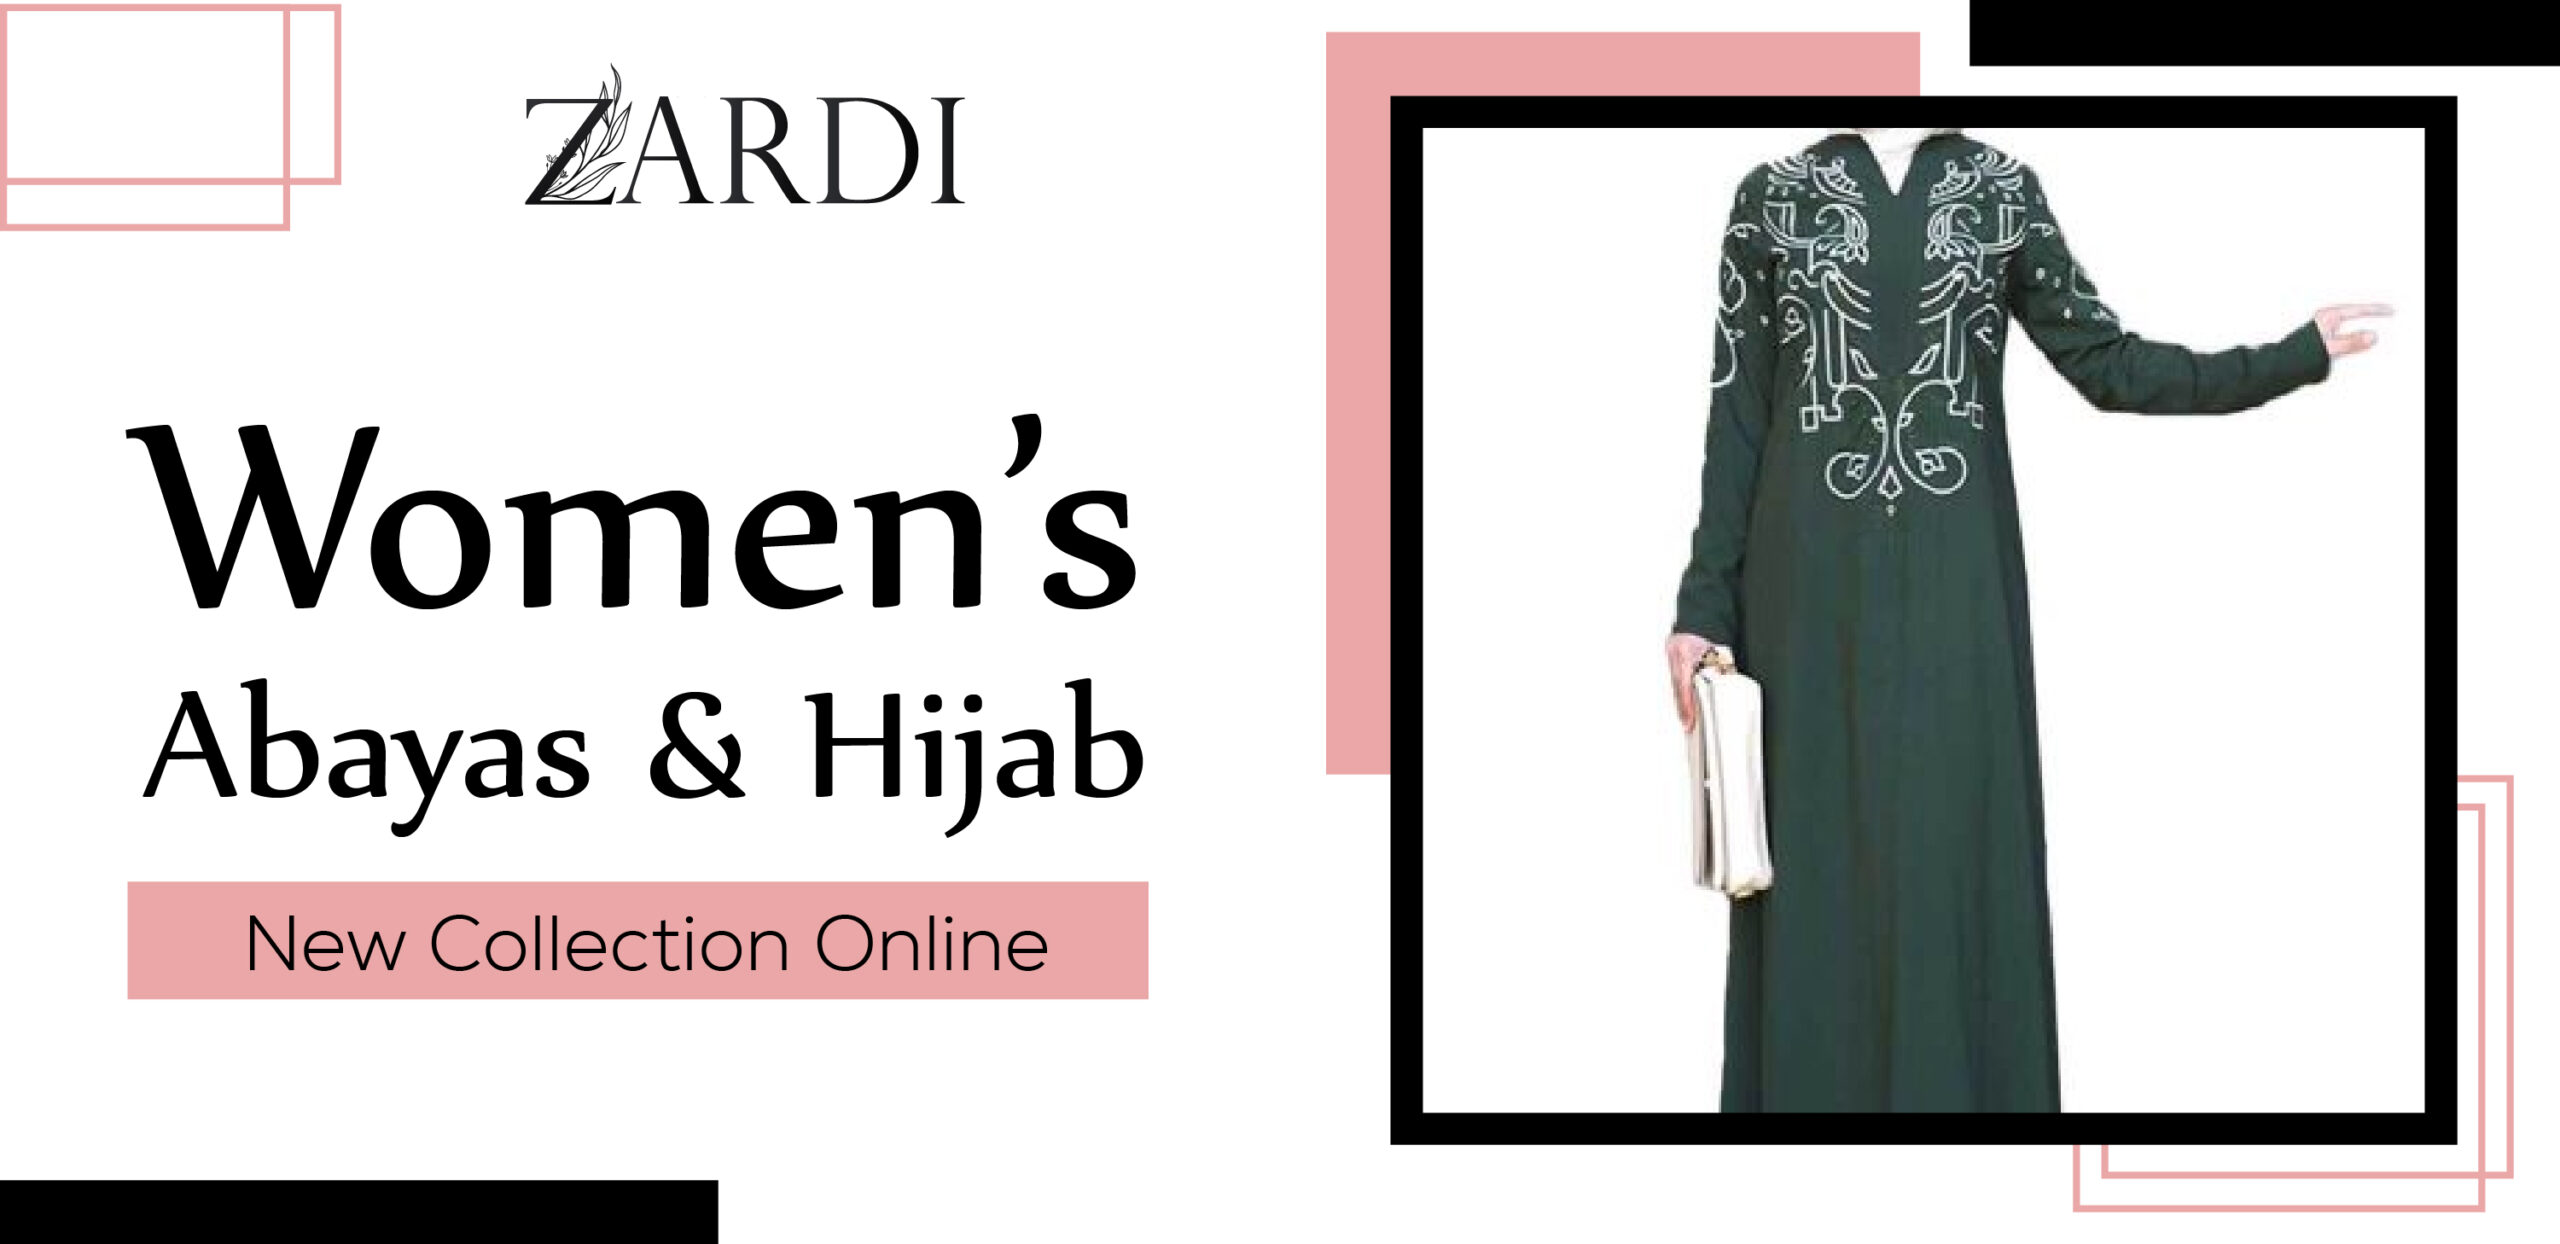 Women Abayas & Hijab New Collection Online